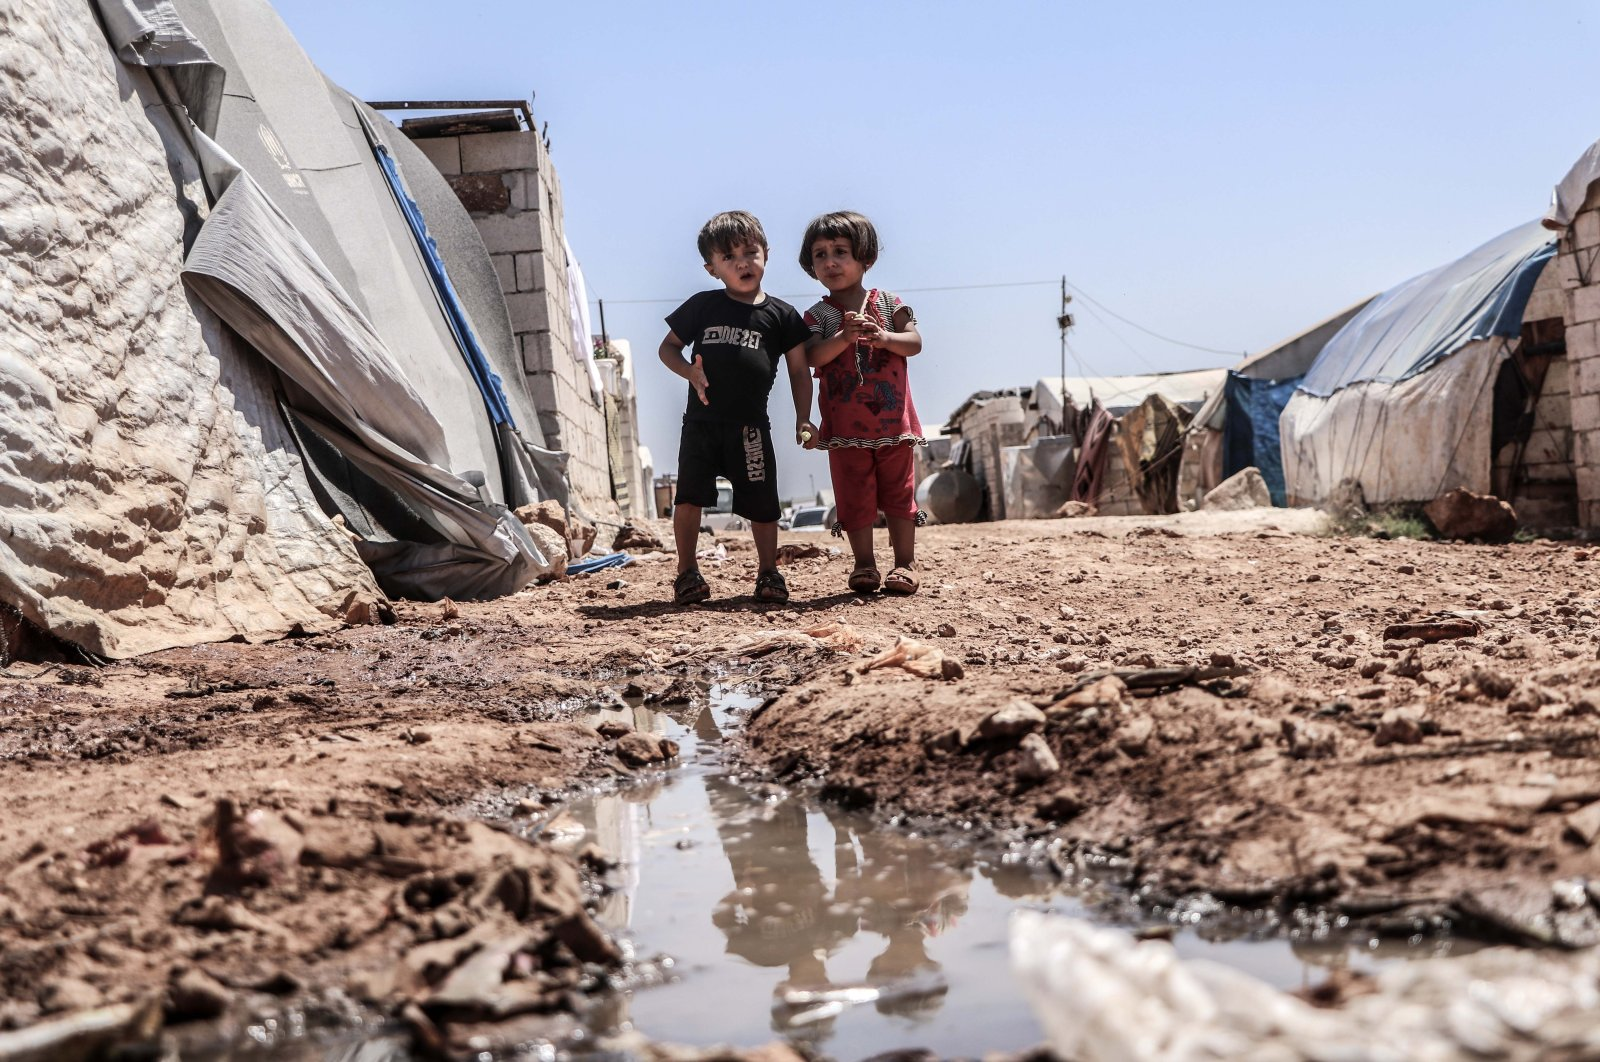 Infrastructural problems, including open cesspools and damaged sewer systems, threaten the health of displaced Syrians living in Idlib's camps. The picture was taken in the Khair Al-Sham camp in northern Syria, July 7, 2020. (AA Photo)